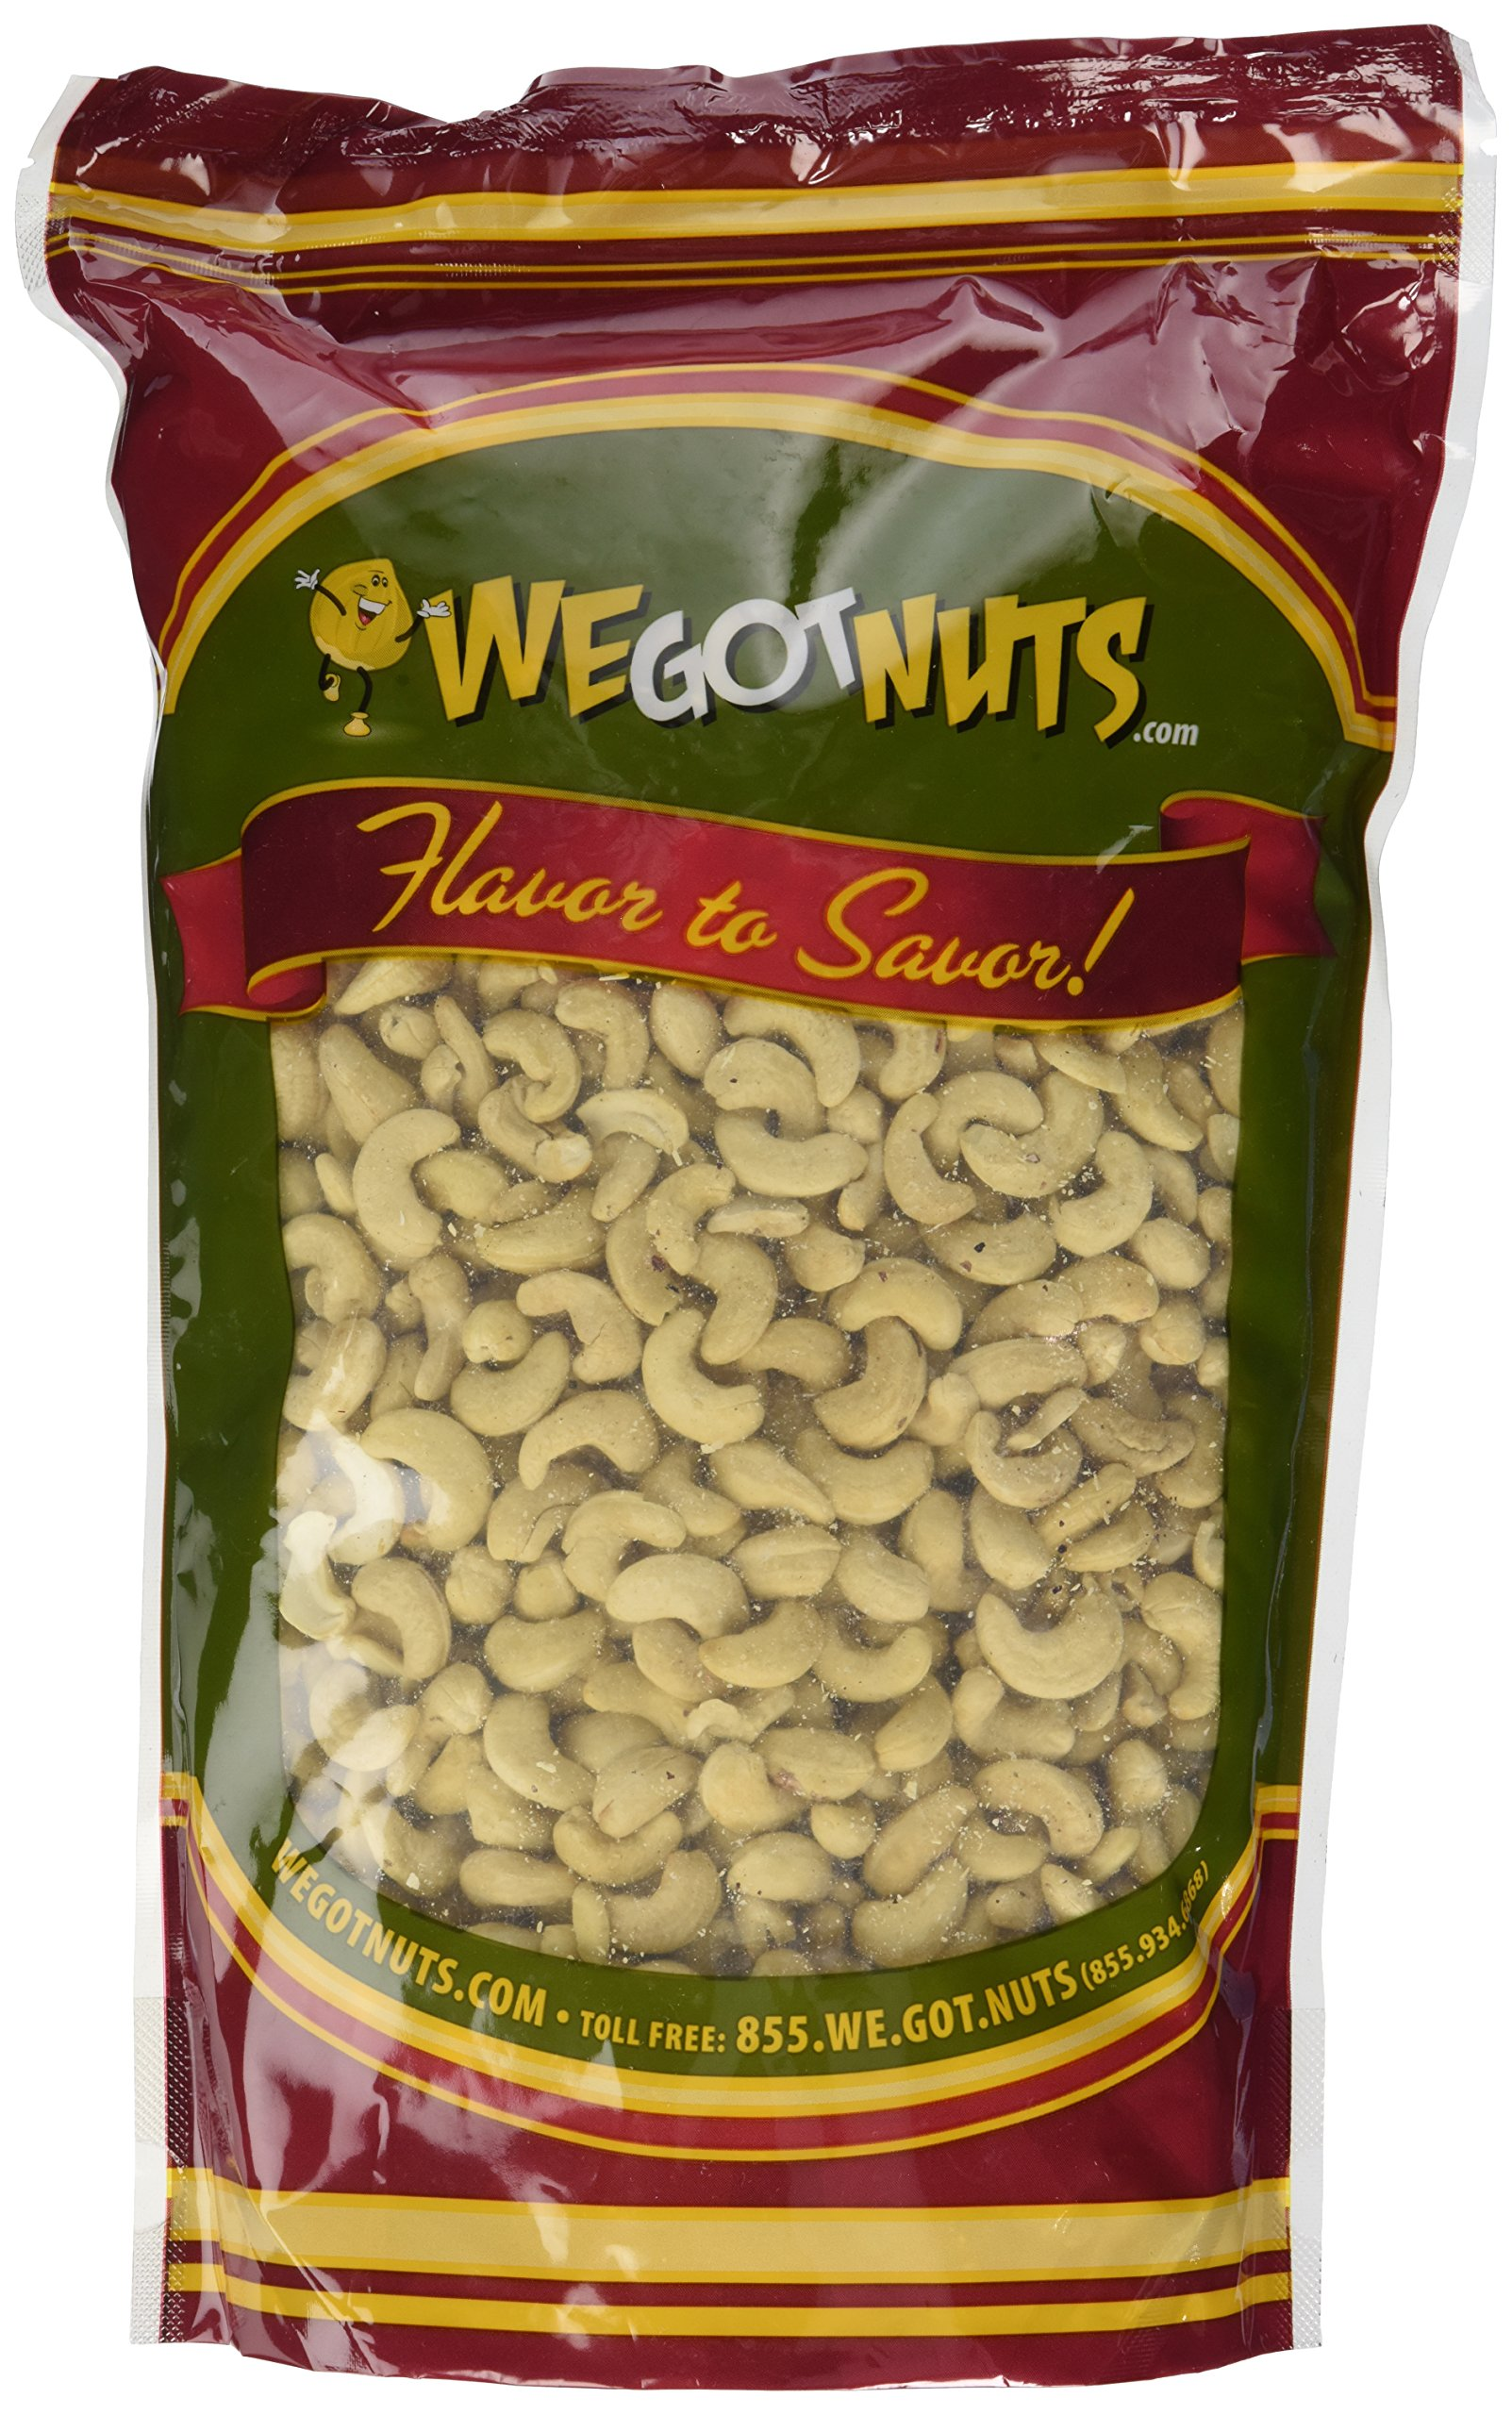 Cashews, Whole, Raw, 320, Bulk Nuts - We Got Nuts (5 LBS.) by We Got Nuts (Image #2)